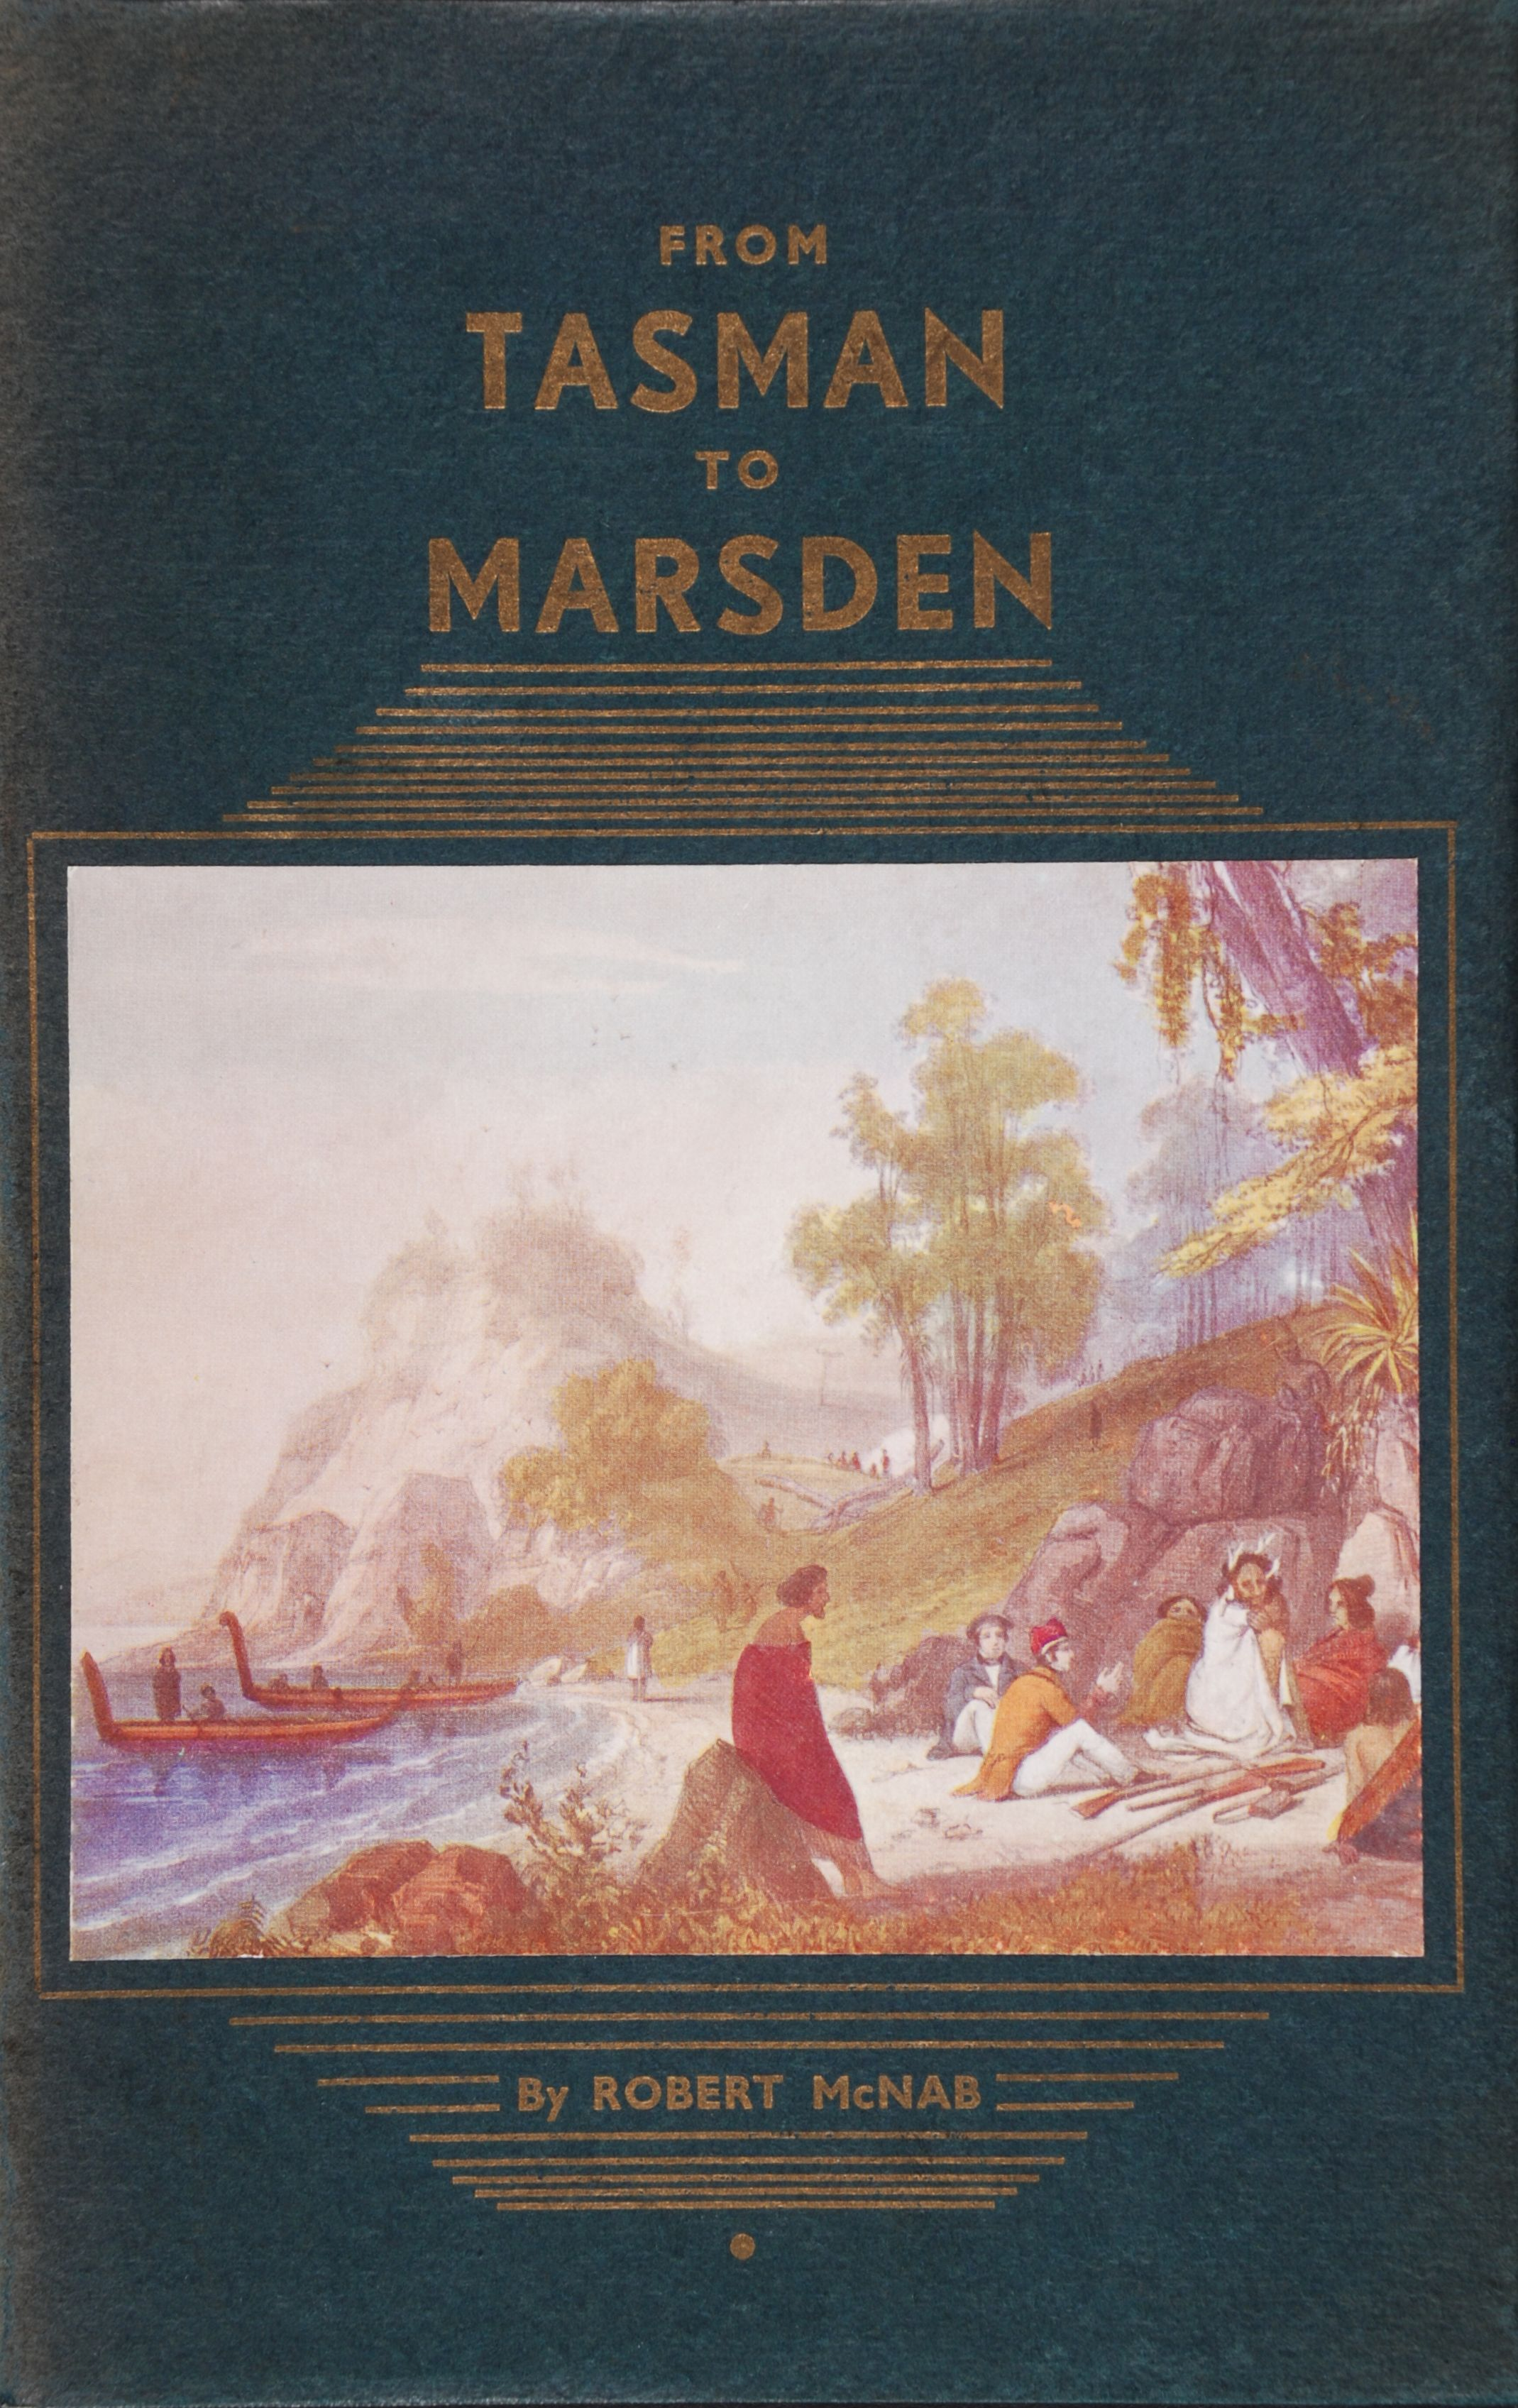 Robert McNab. From Tasman to Marsden: a history of northern New Zealand from 1642 to 1818.  Dunedin: J. Wilkie & Co., 1914.